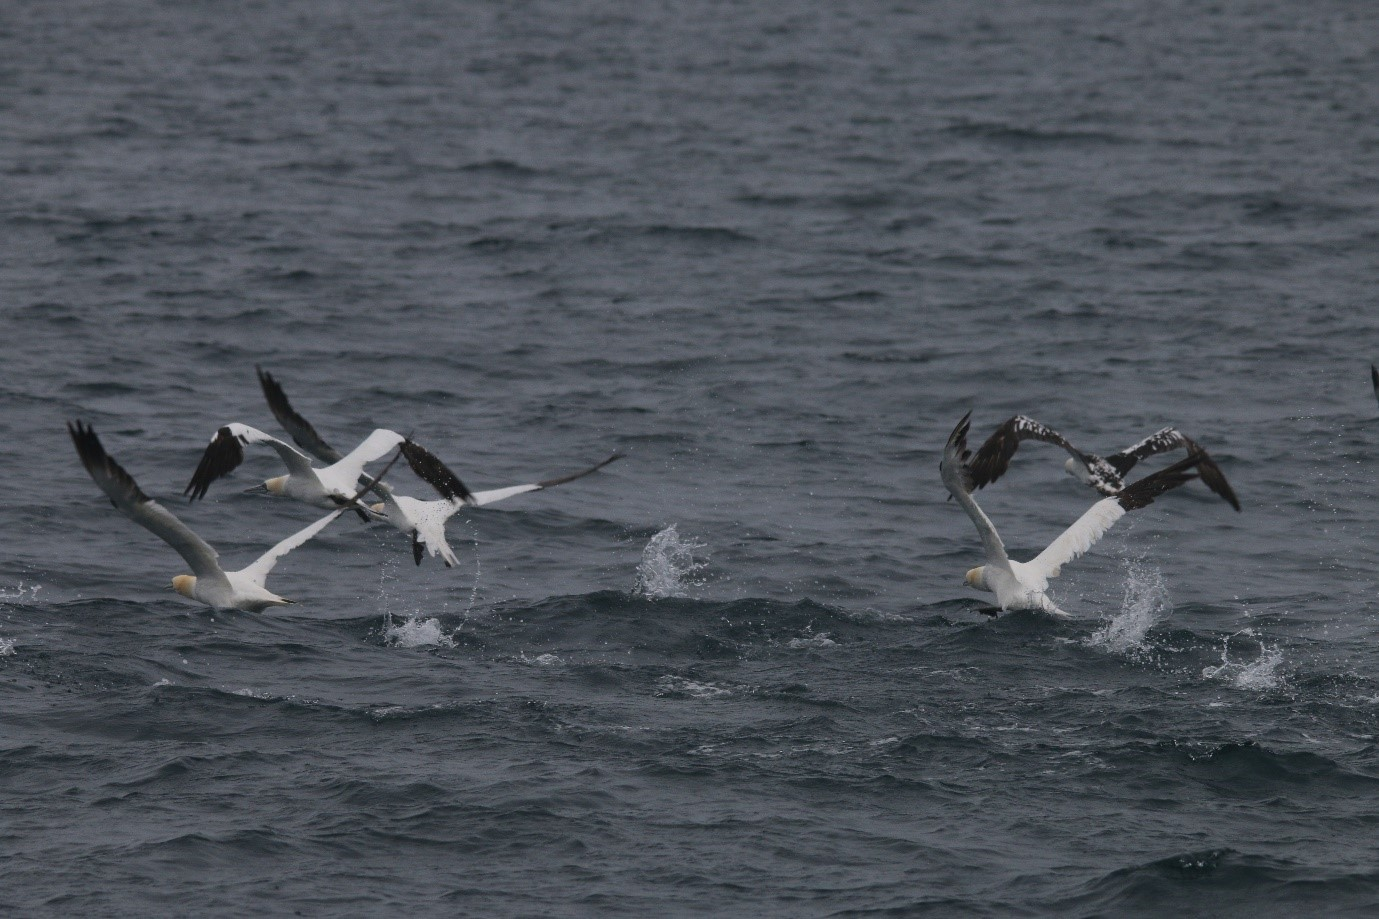 Some of the hundreds of gannets sighted